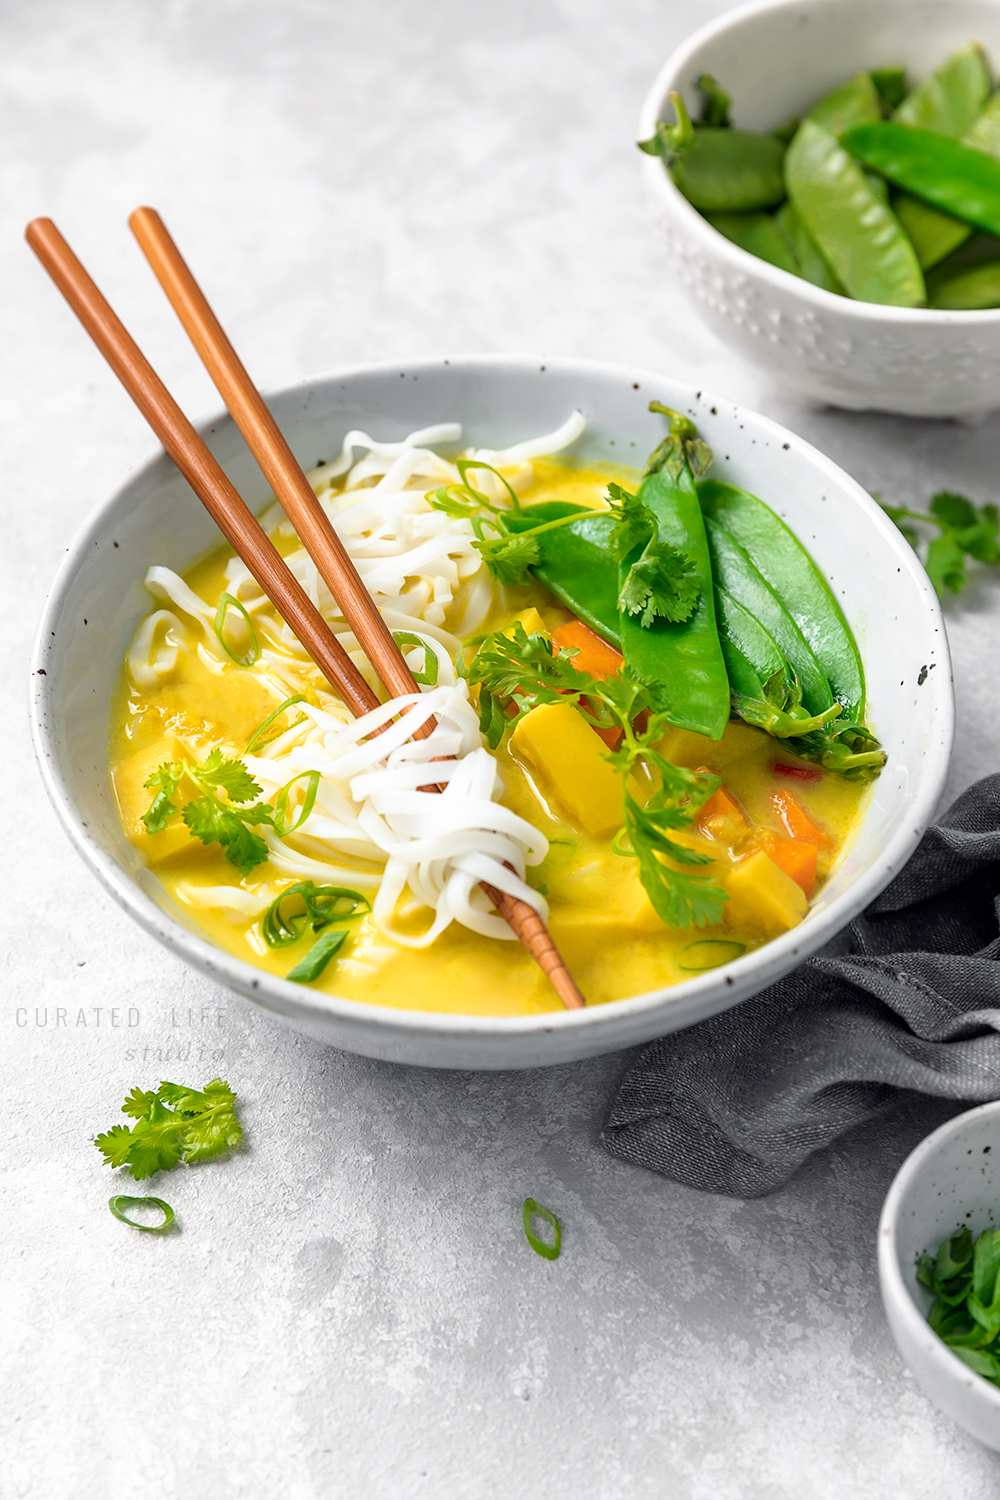 Delicious vegetable Coconut Curry Soup with potato & noodles.  #curry #soup #recipe #coconut #vegetarian #vegan #gluten-free #healthy